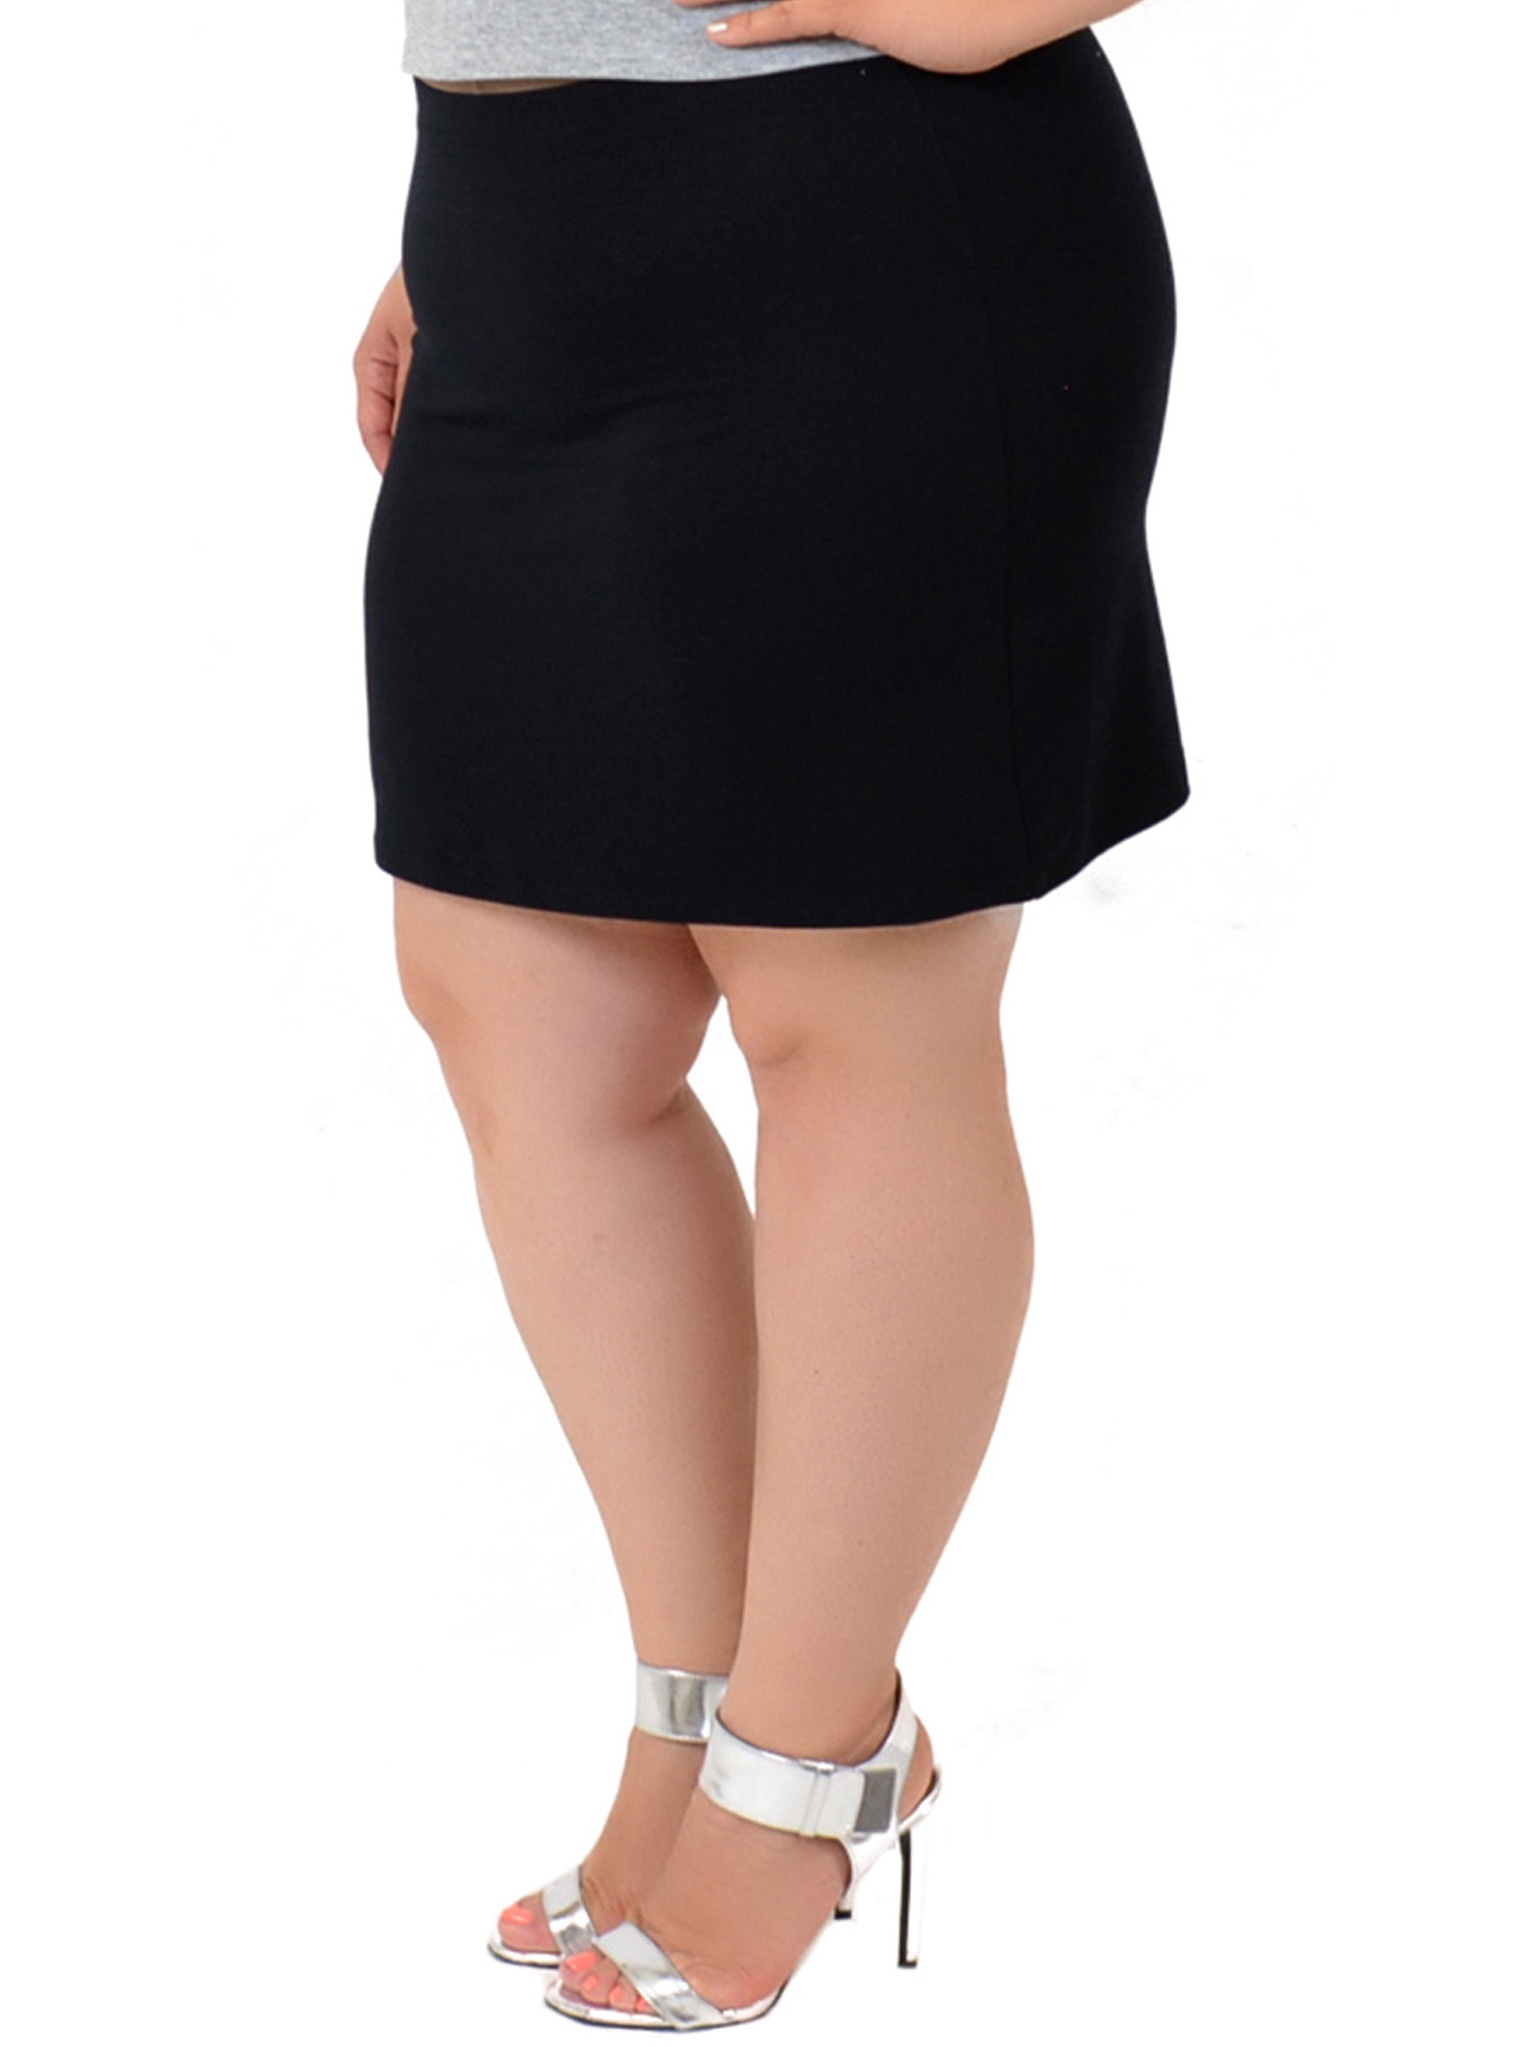 Stretch Is Comfort - Plus Size Cotton Soft Stretch Fabric Basic Mini